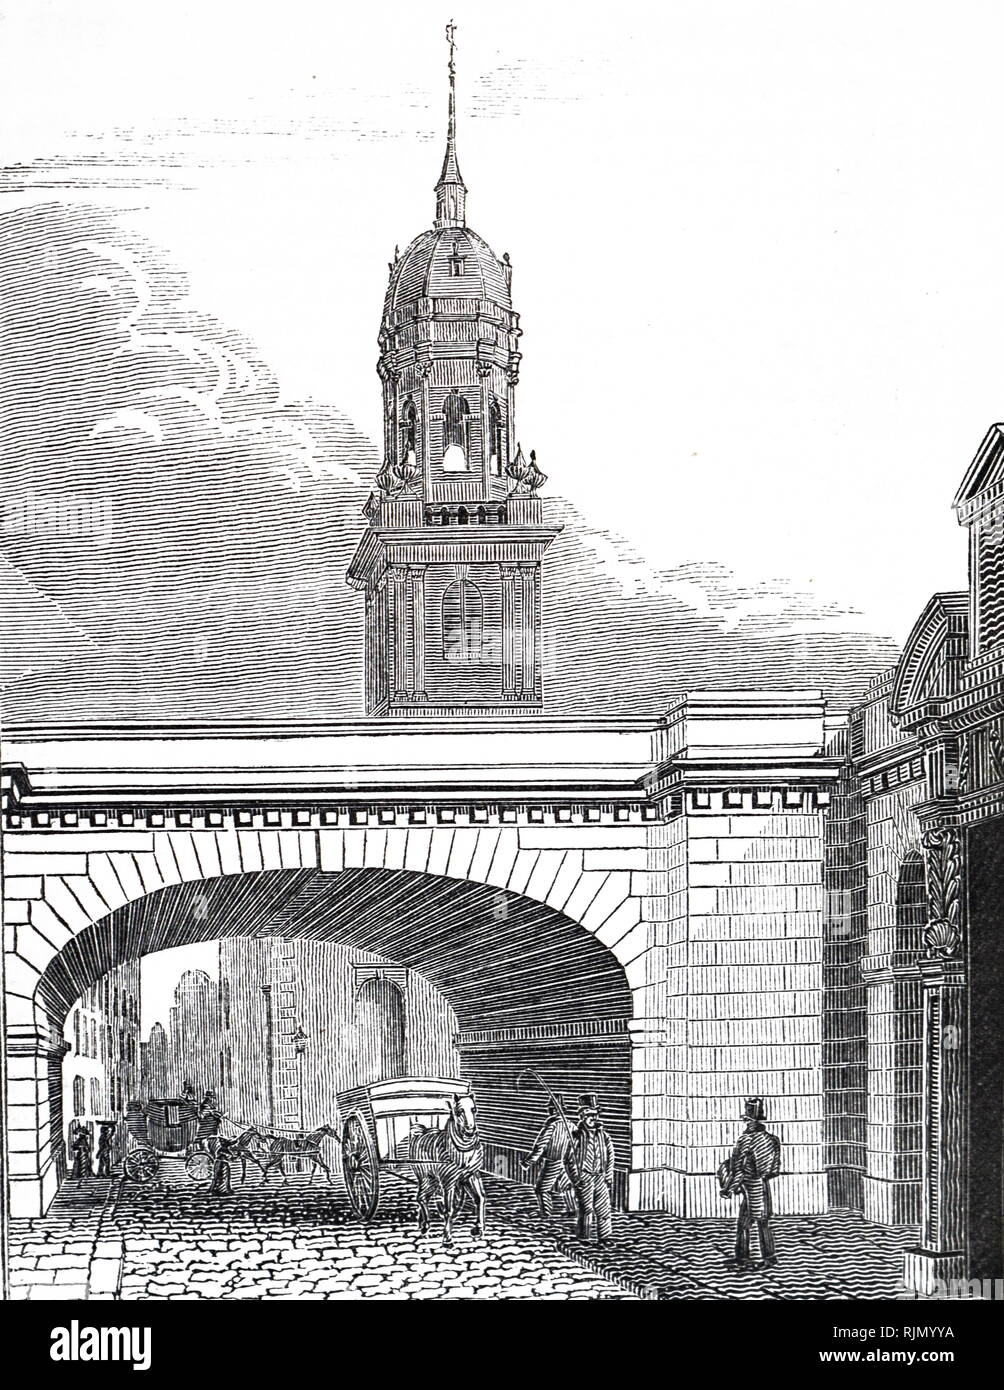 Illustration showing Arch of London Bridge over Thames Street. This was the new London Bridge opened on 1 August 1831. Designed by John Rennie. 1832 - Stock Image